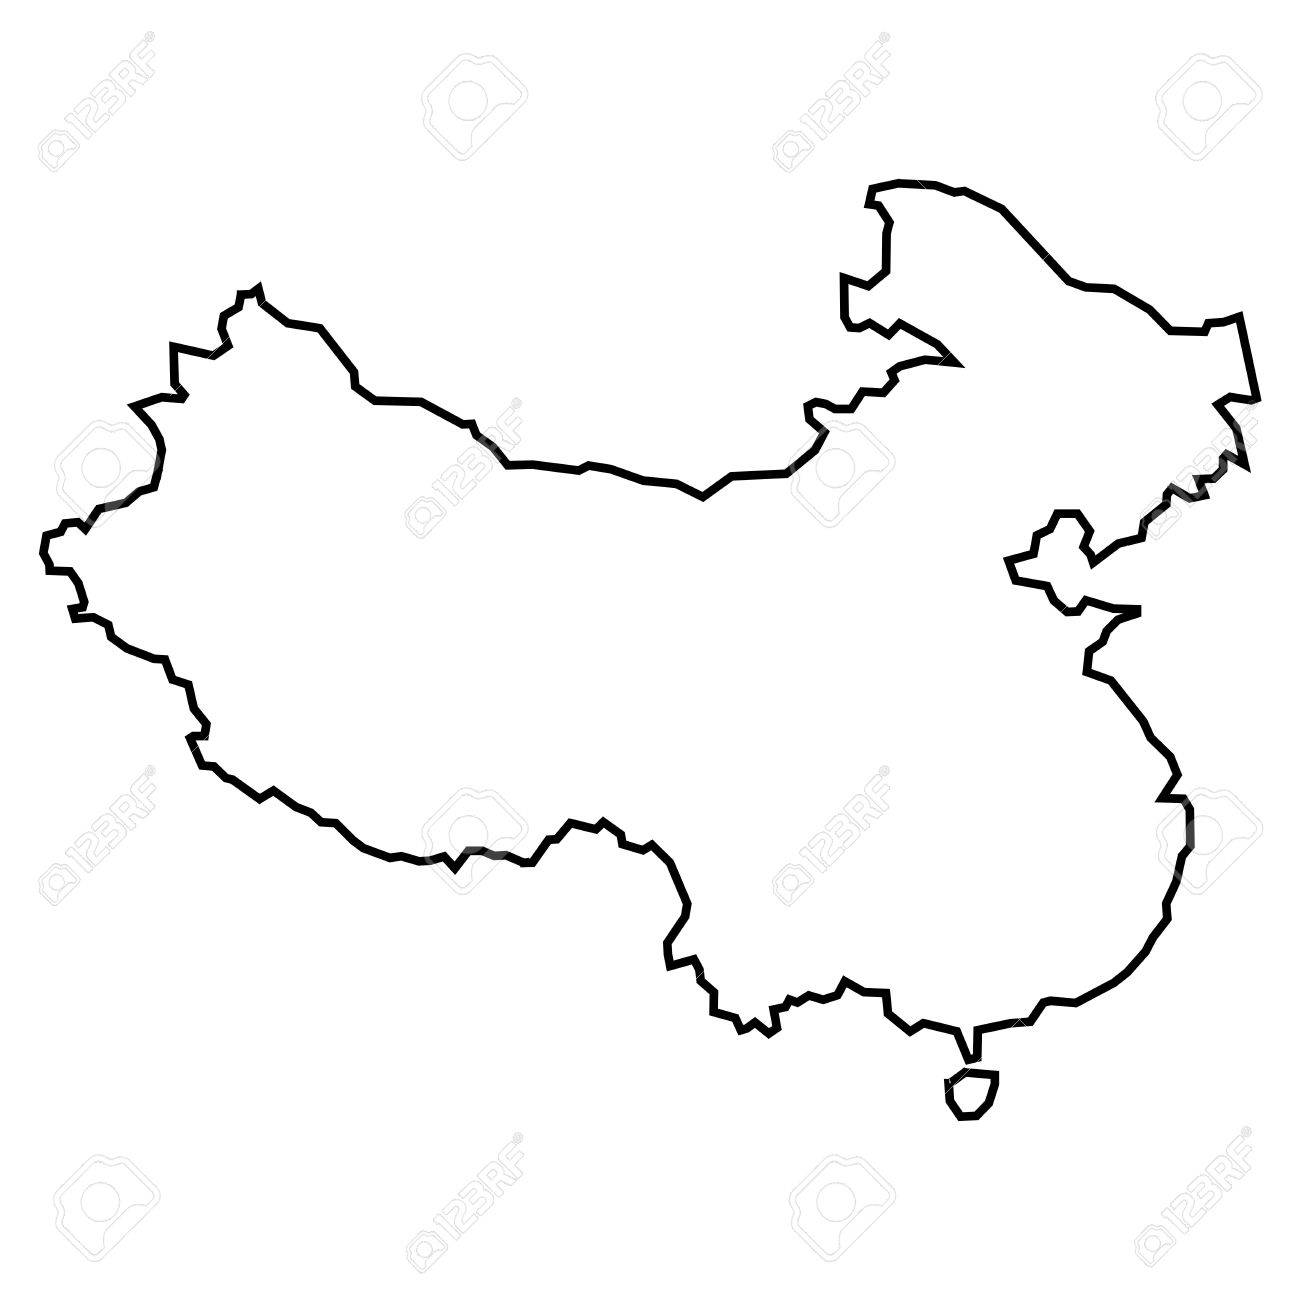 Simple Contour Map Of Peoples Republic Of China . Black Outline ...